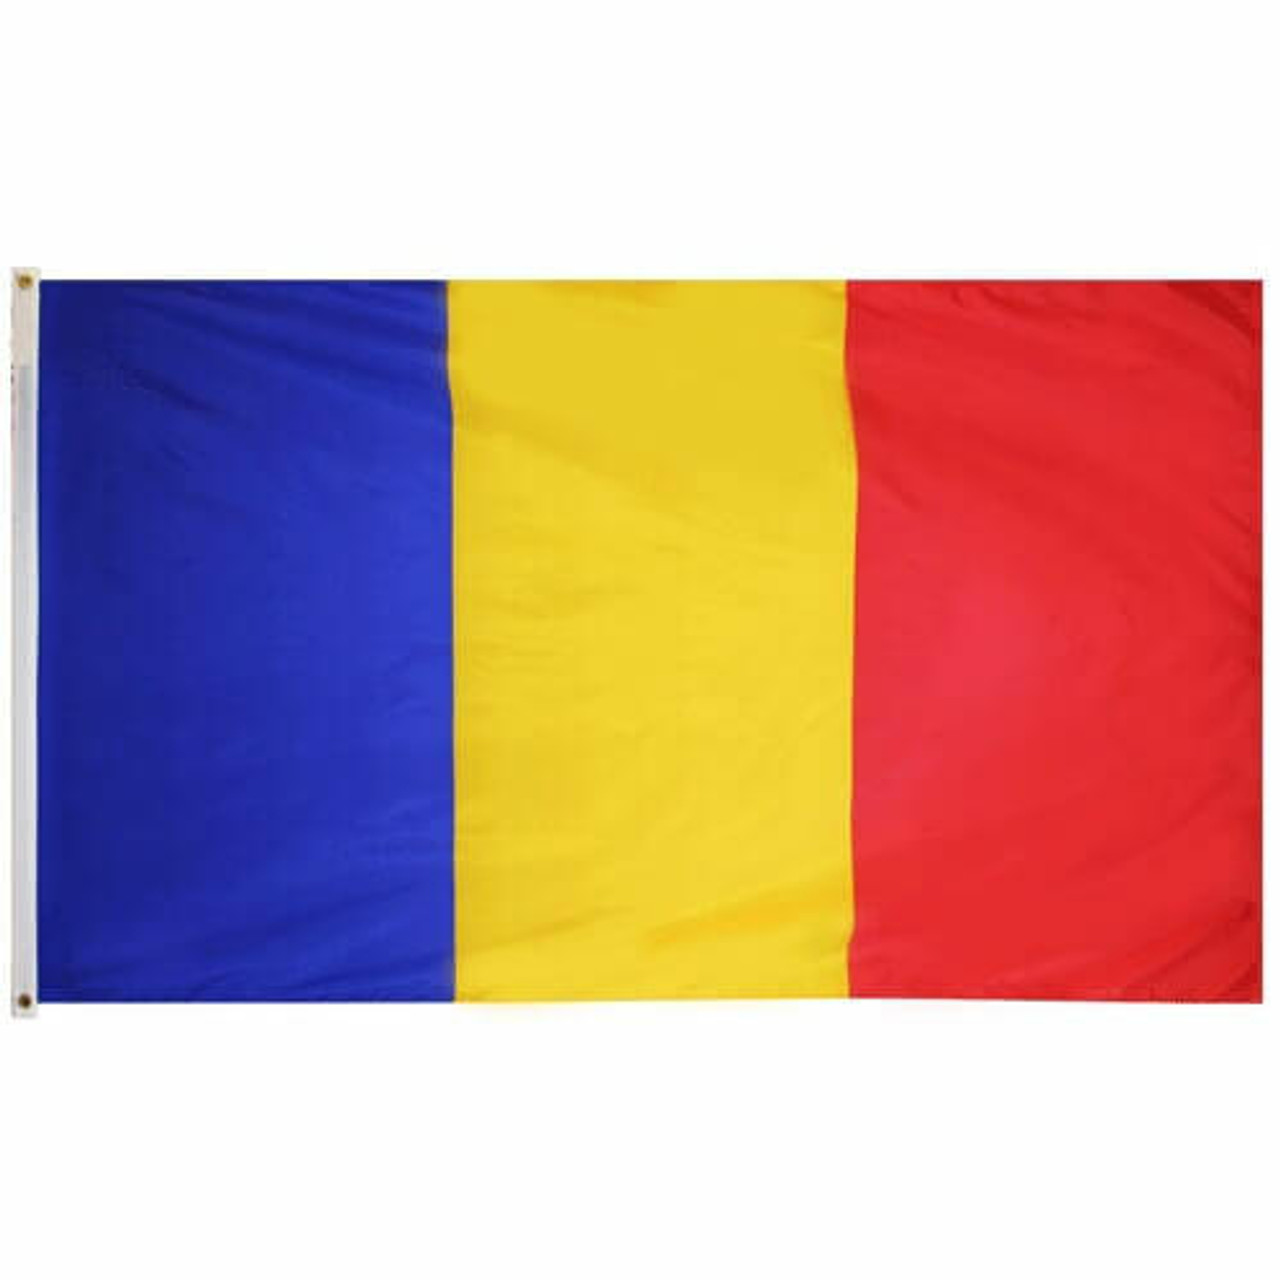 The Romania Flag is a tricolor flag with a blue, yellow, and red vertical stripe.